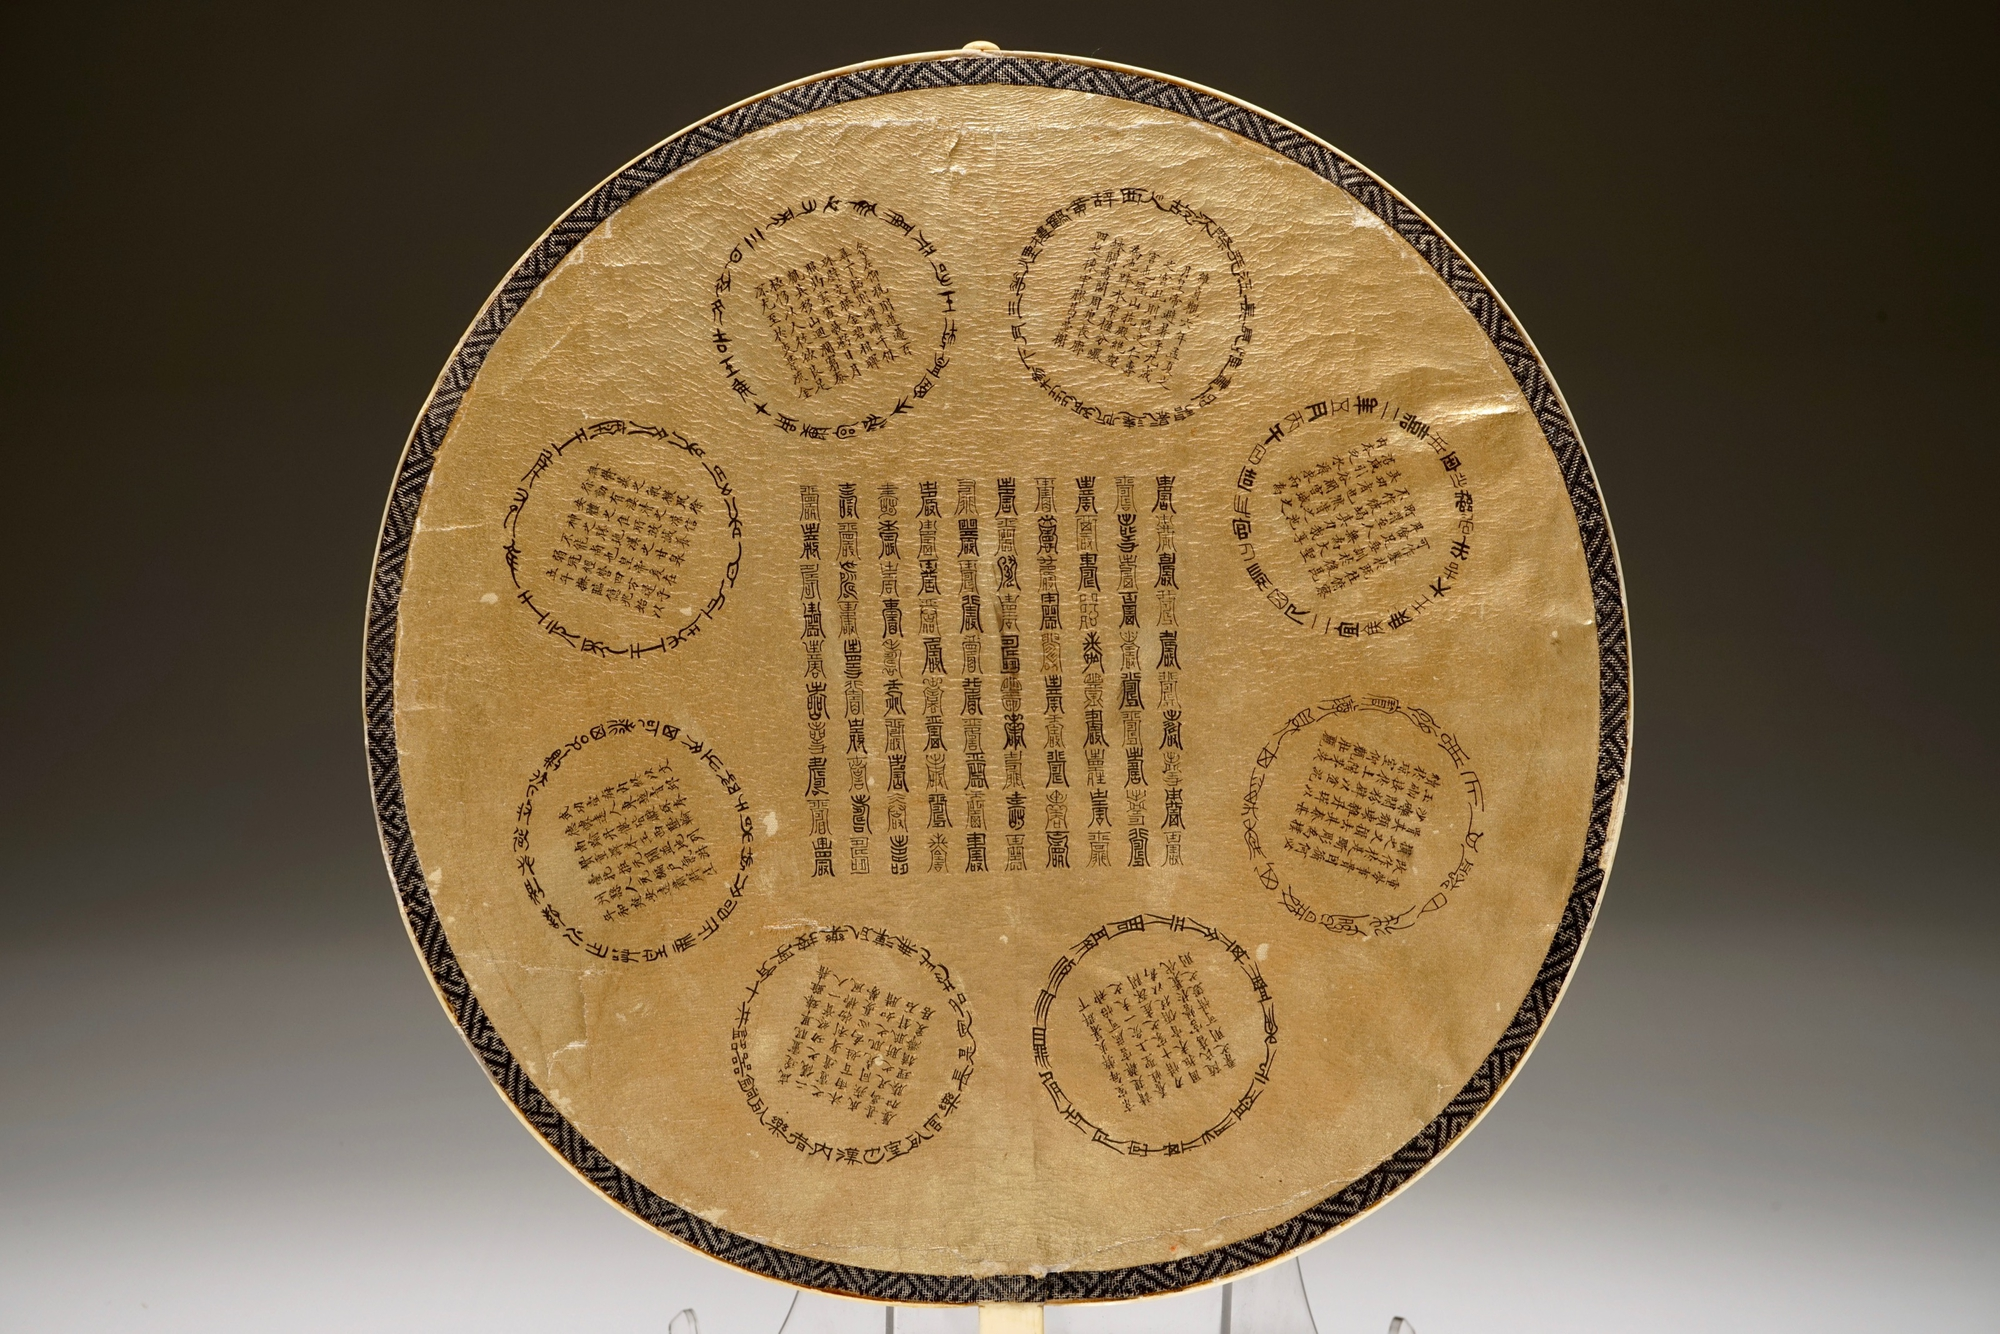 Two Chinese embroidered silk pien mien fans with ivory handle, 18/19th C. - Image 3 of 61